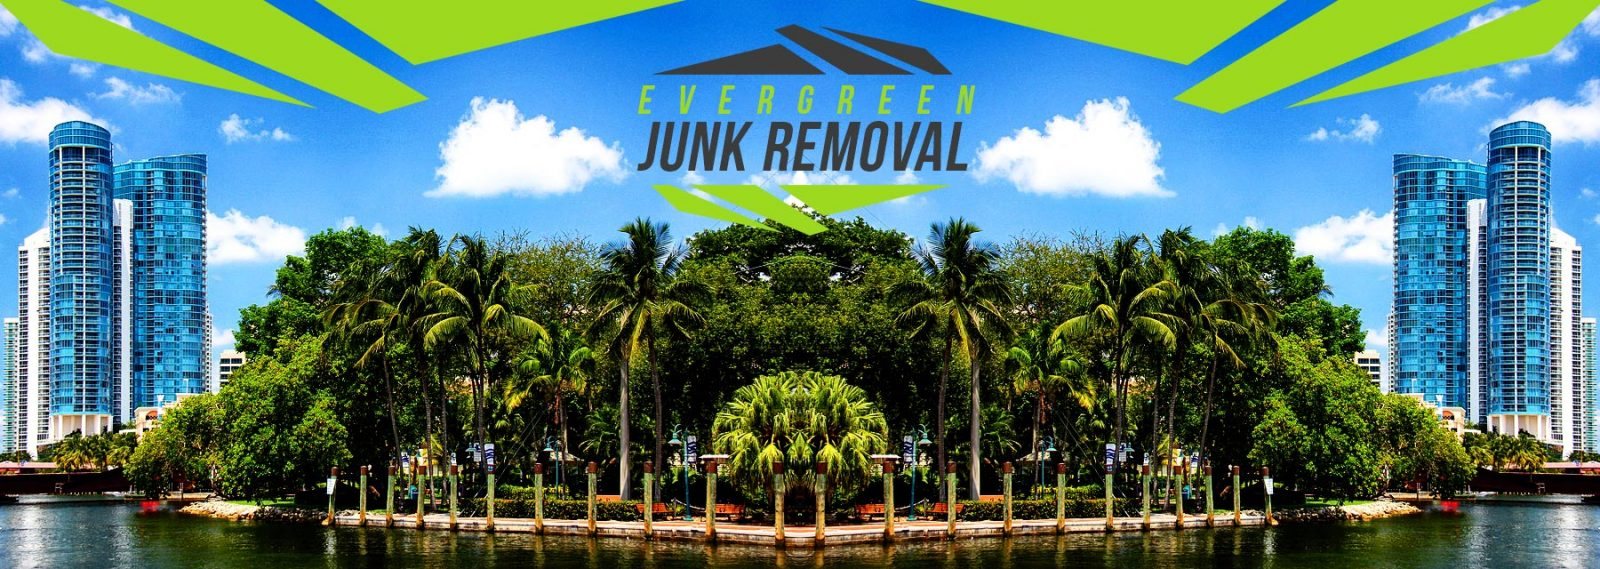 Belle Glade Hot Tub Removal Company